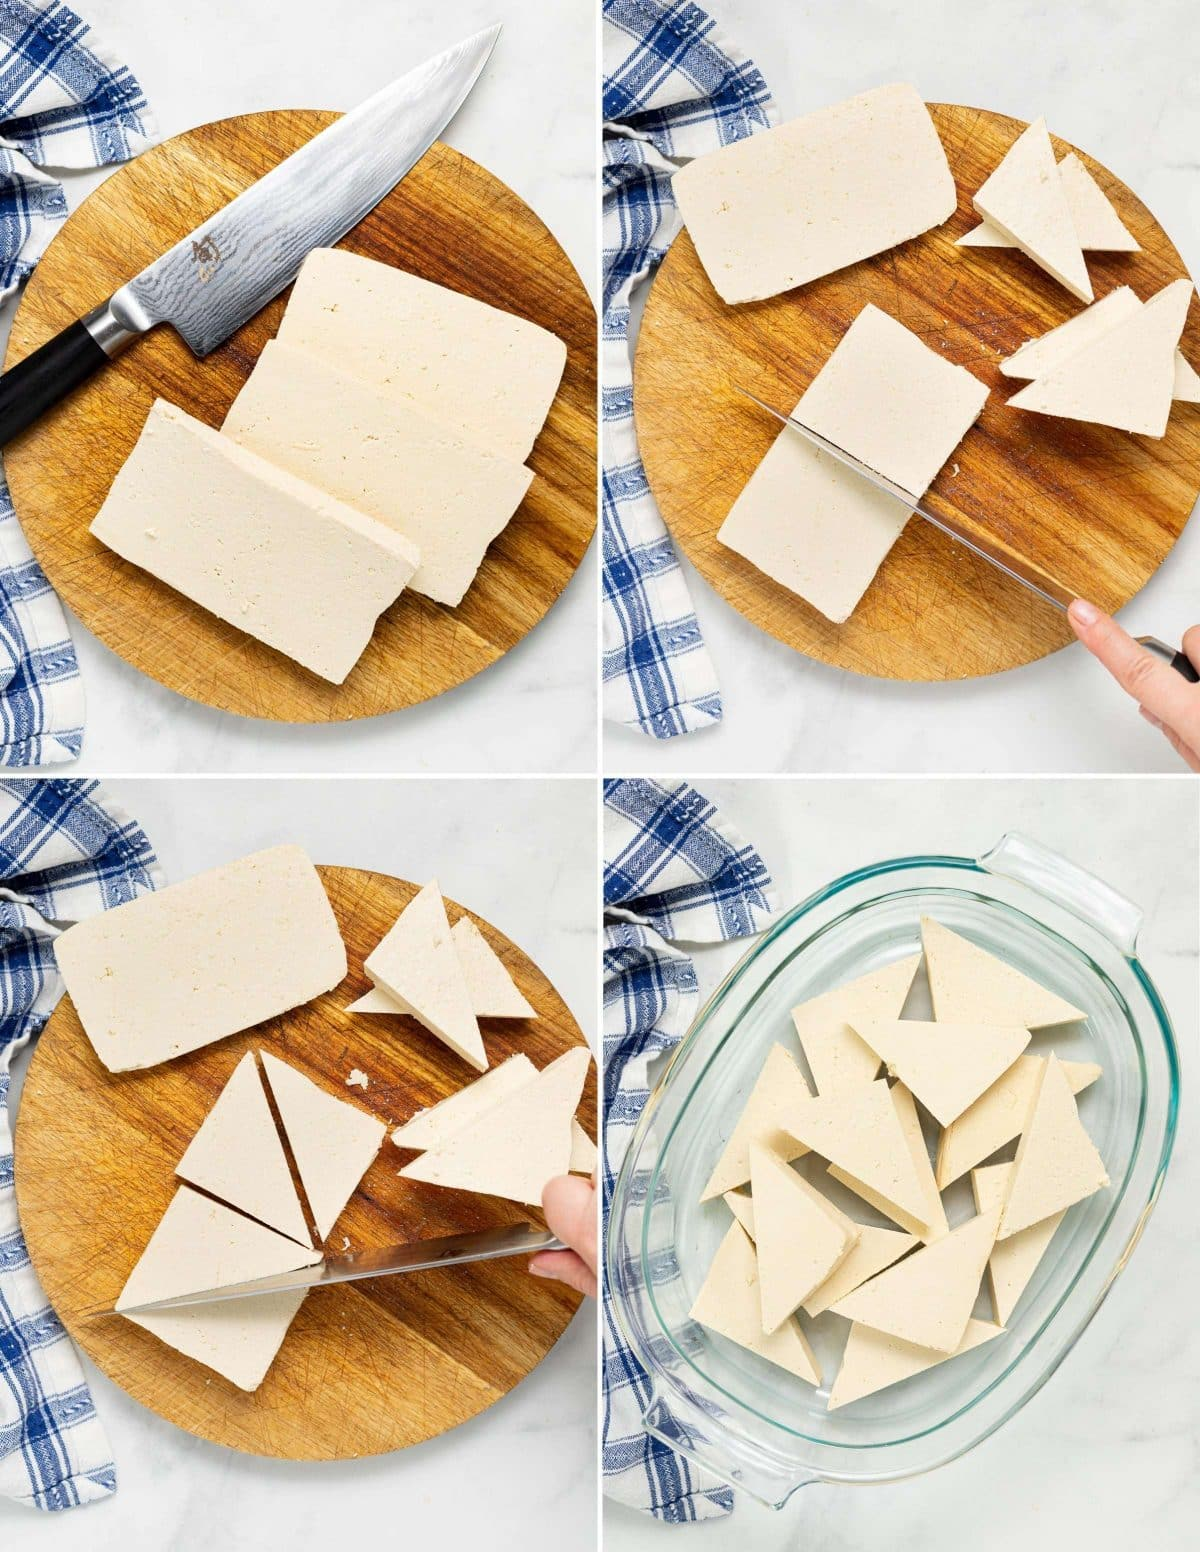 images showing how to cut tofu into triangles